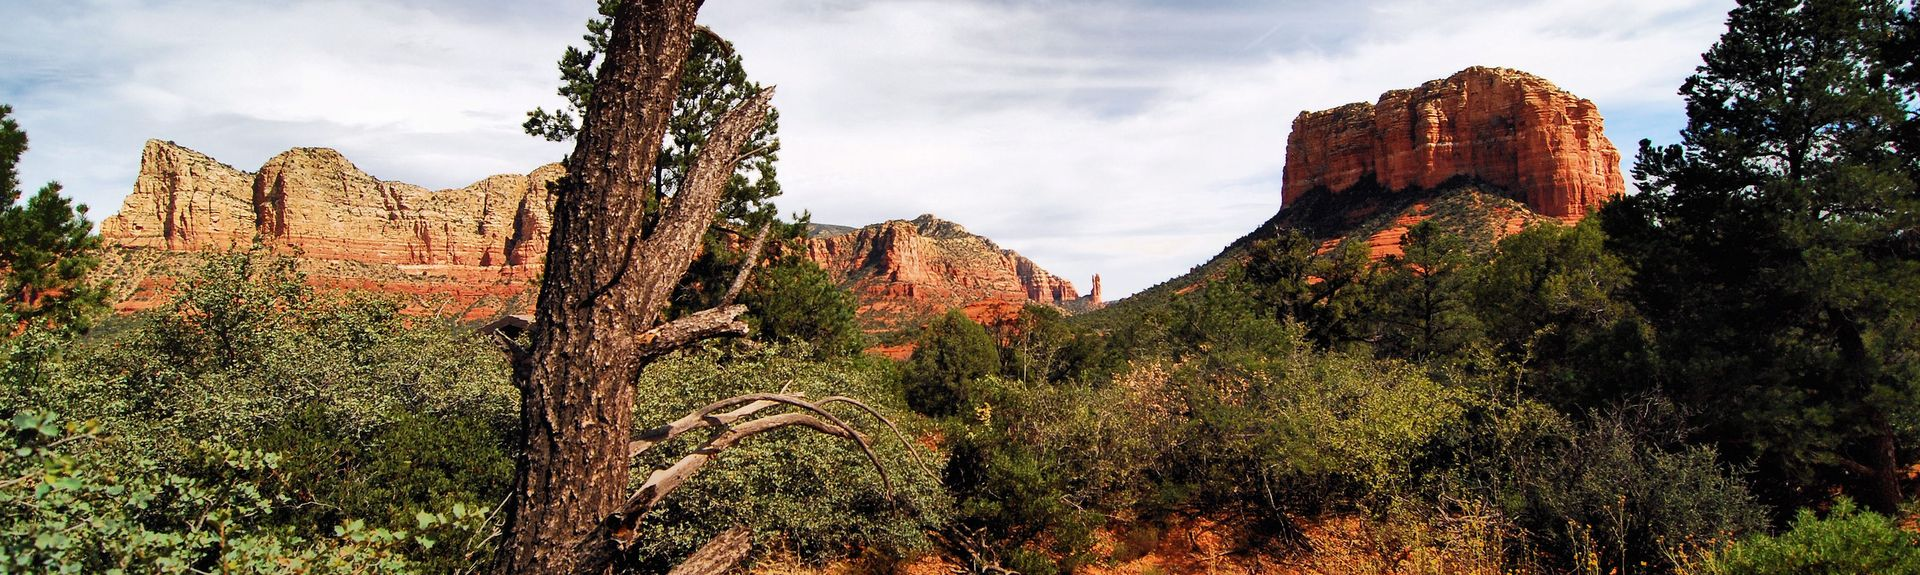 Sedona, Arizona, Estados Unidos